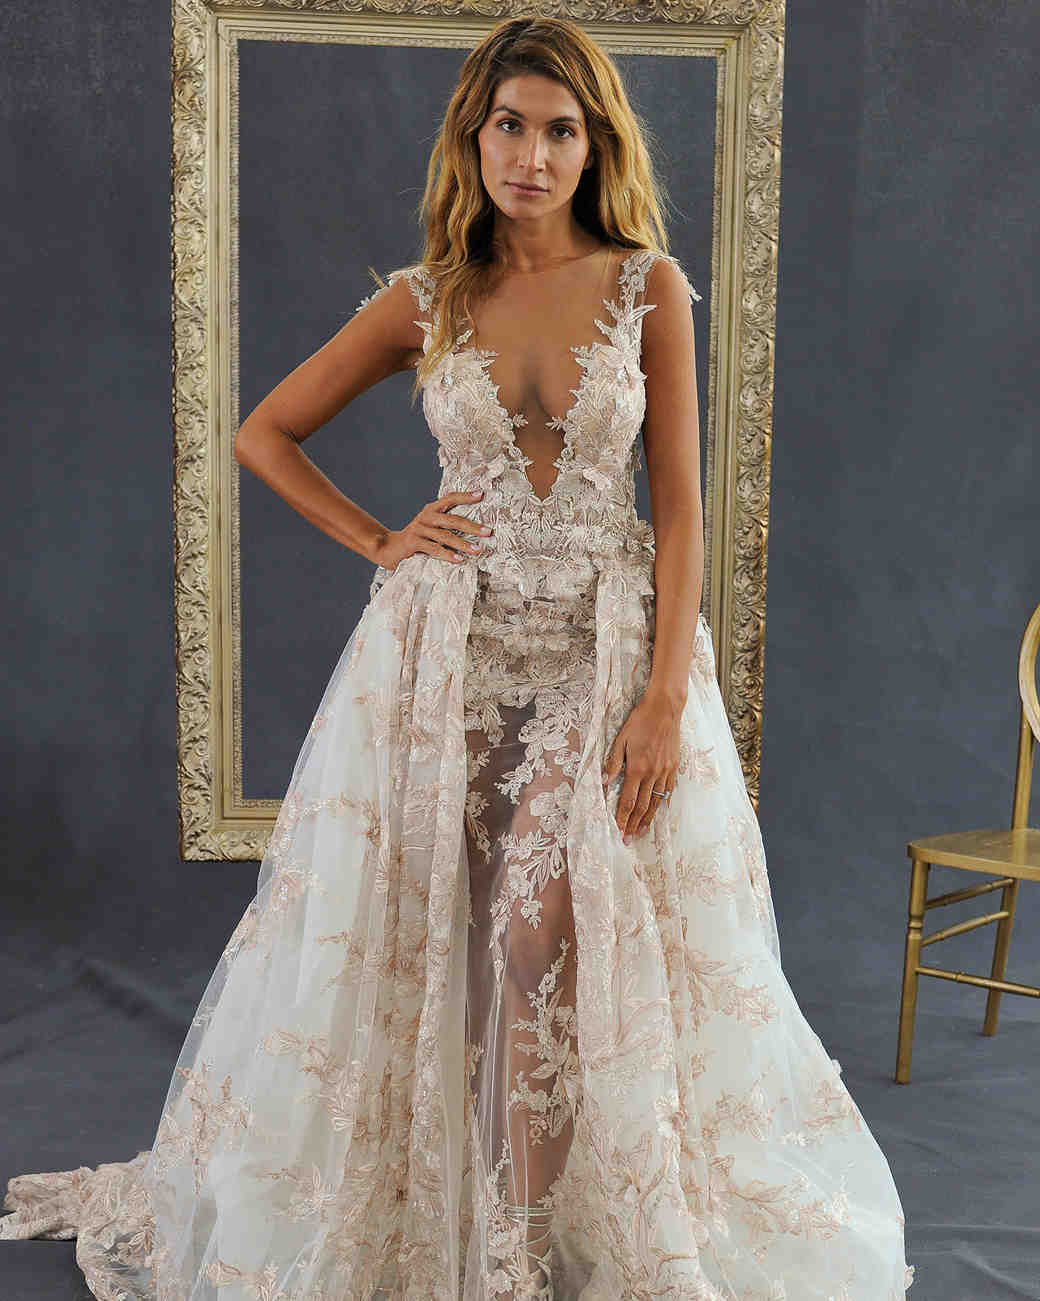 Galia lahav couture fall 2017 wedding dress collection Wedding dress designer galia lahav